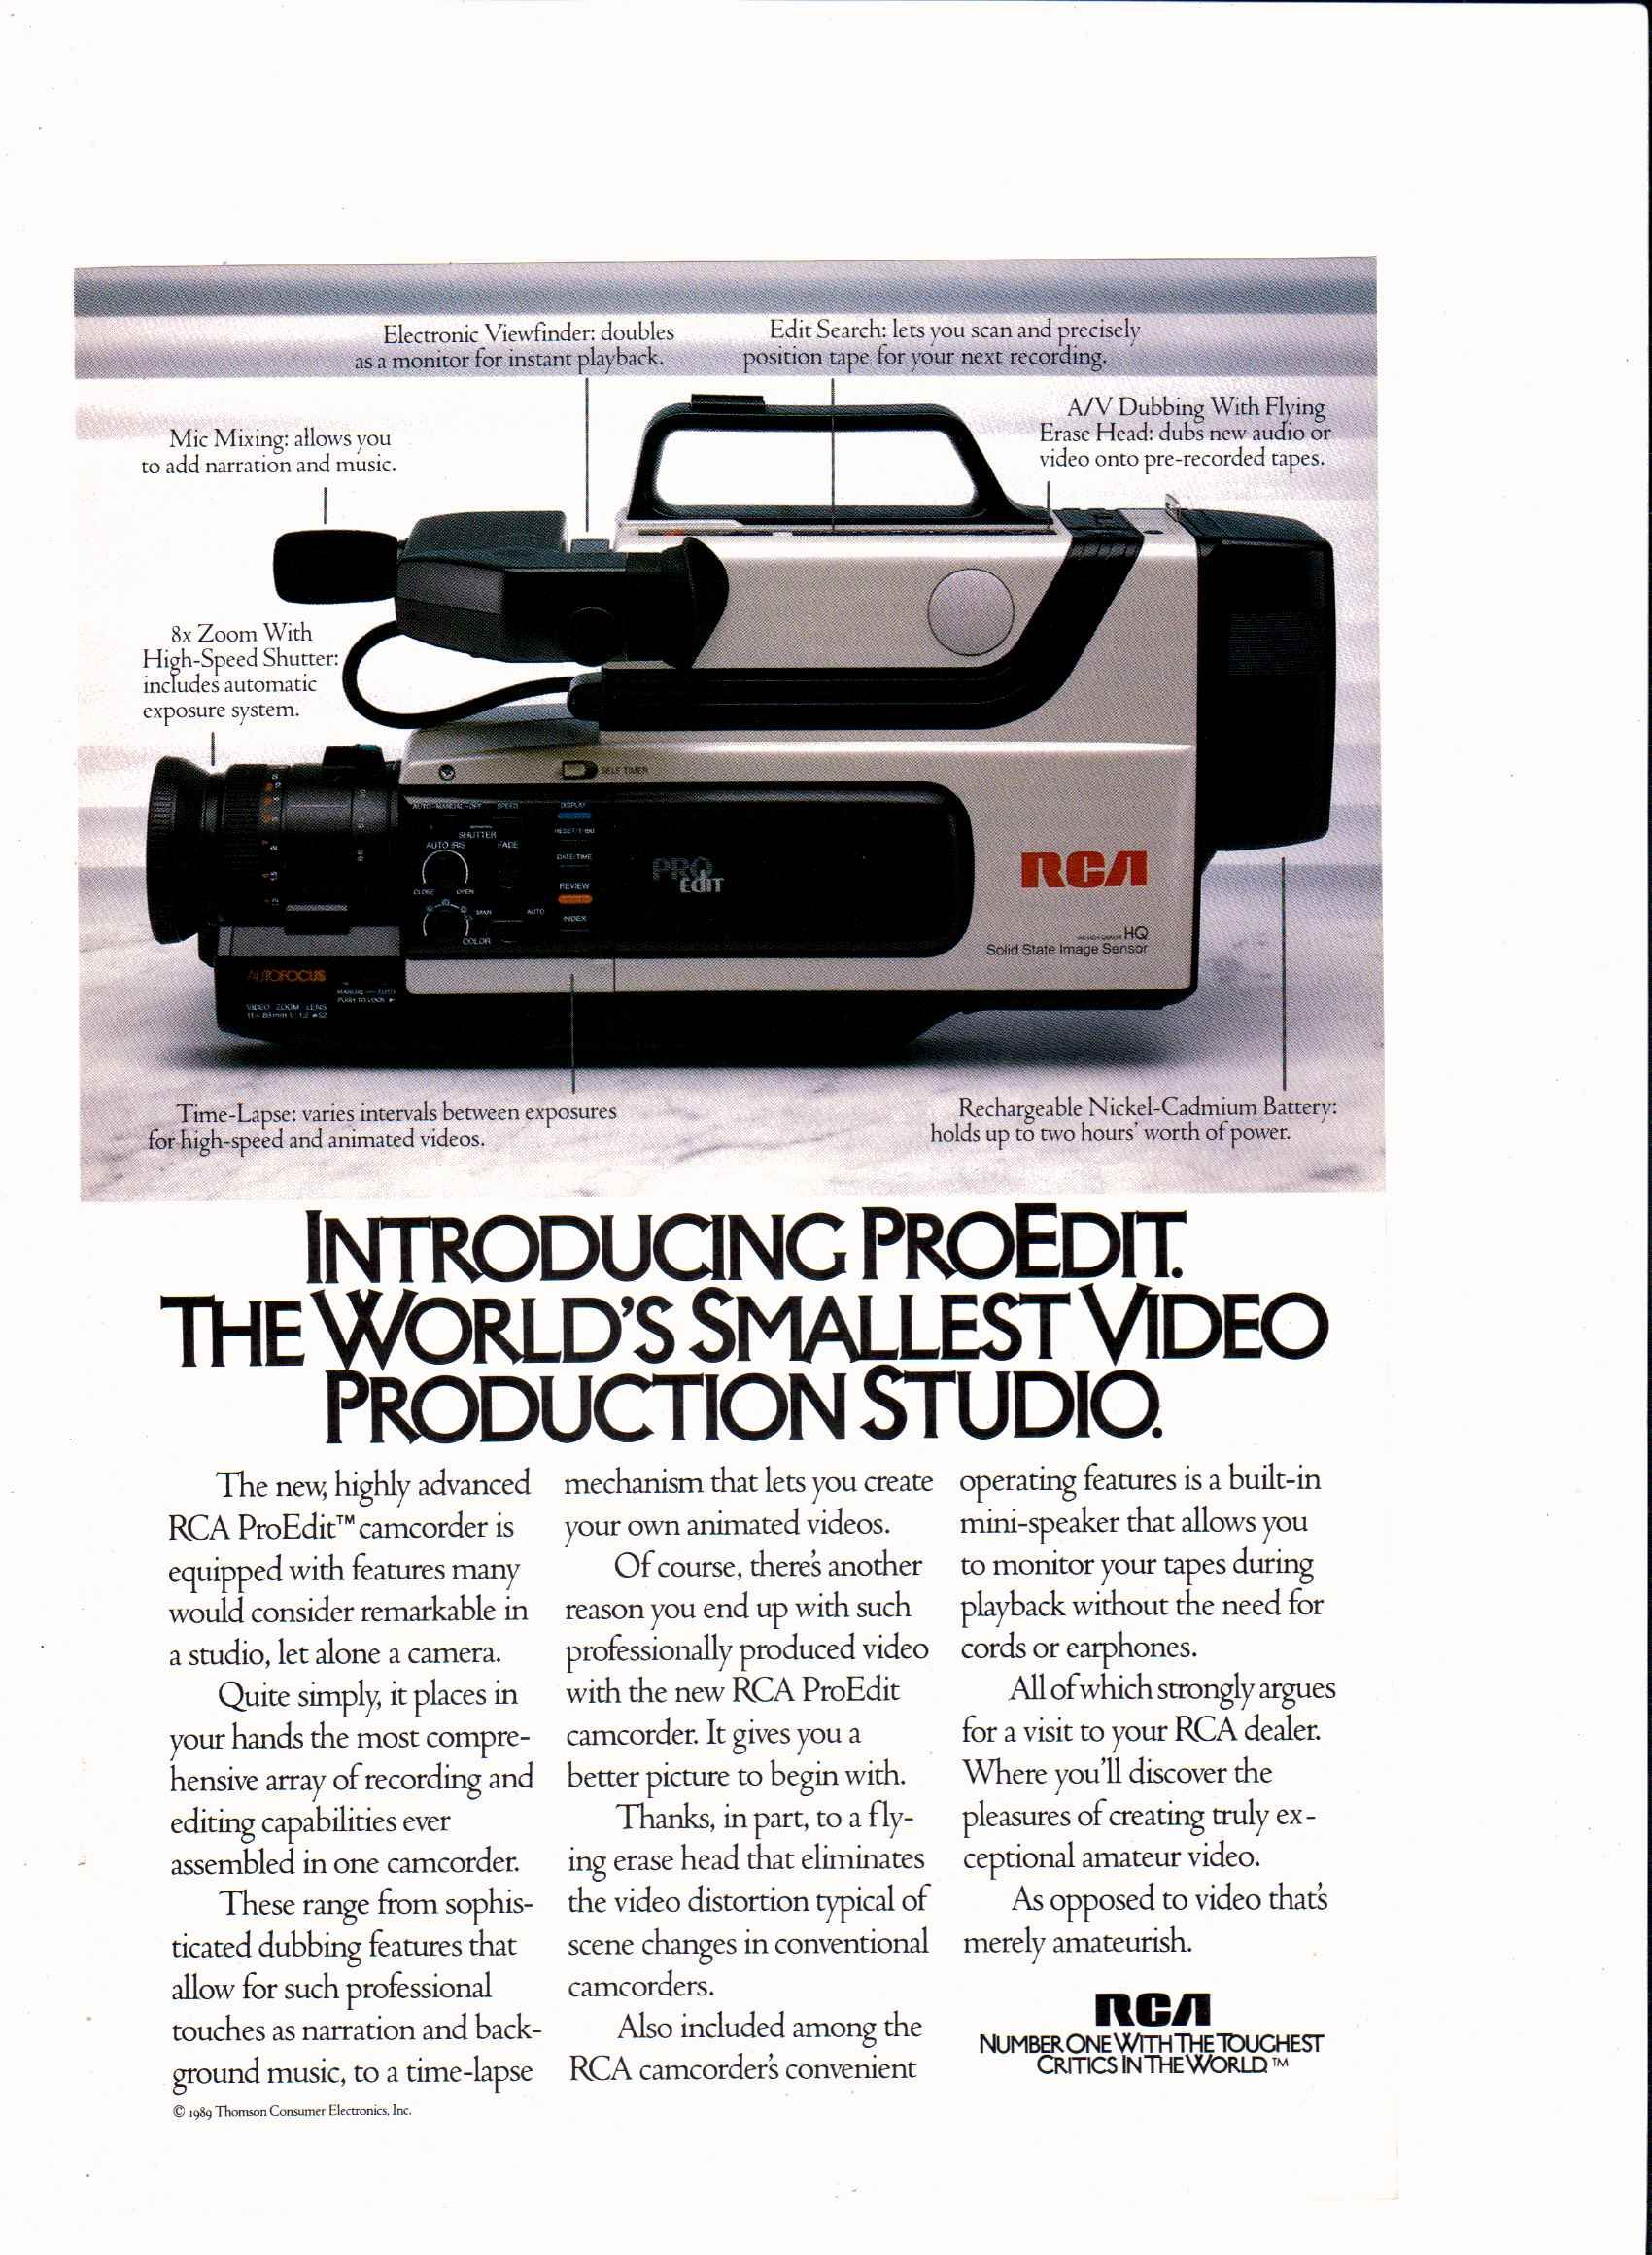 1989 Rca Proedit Camcorder Ad National Geographic December 1989 Ads Vintage Ads Television Network